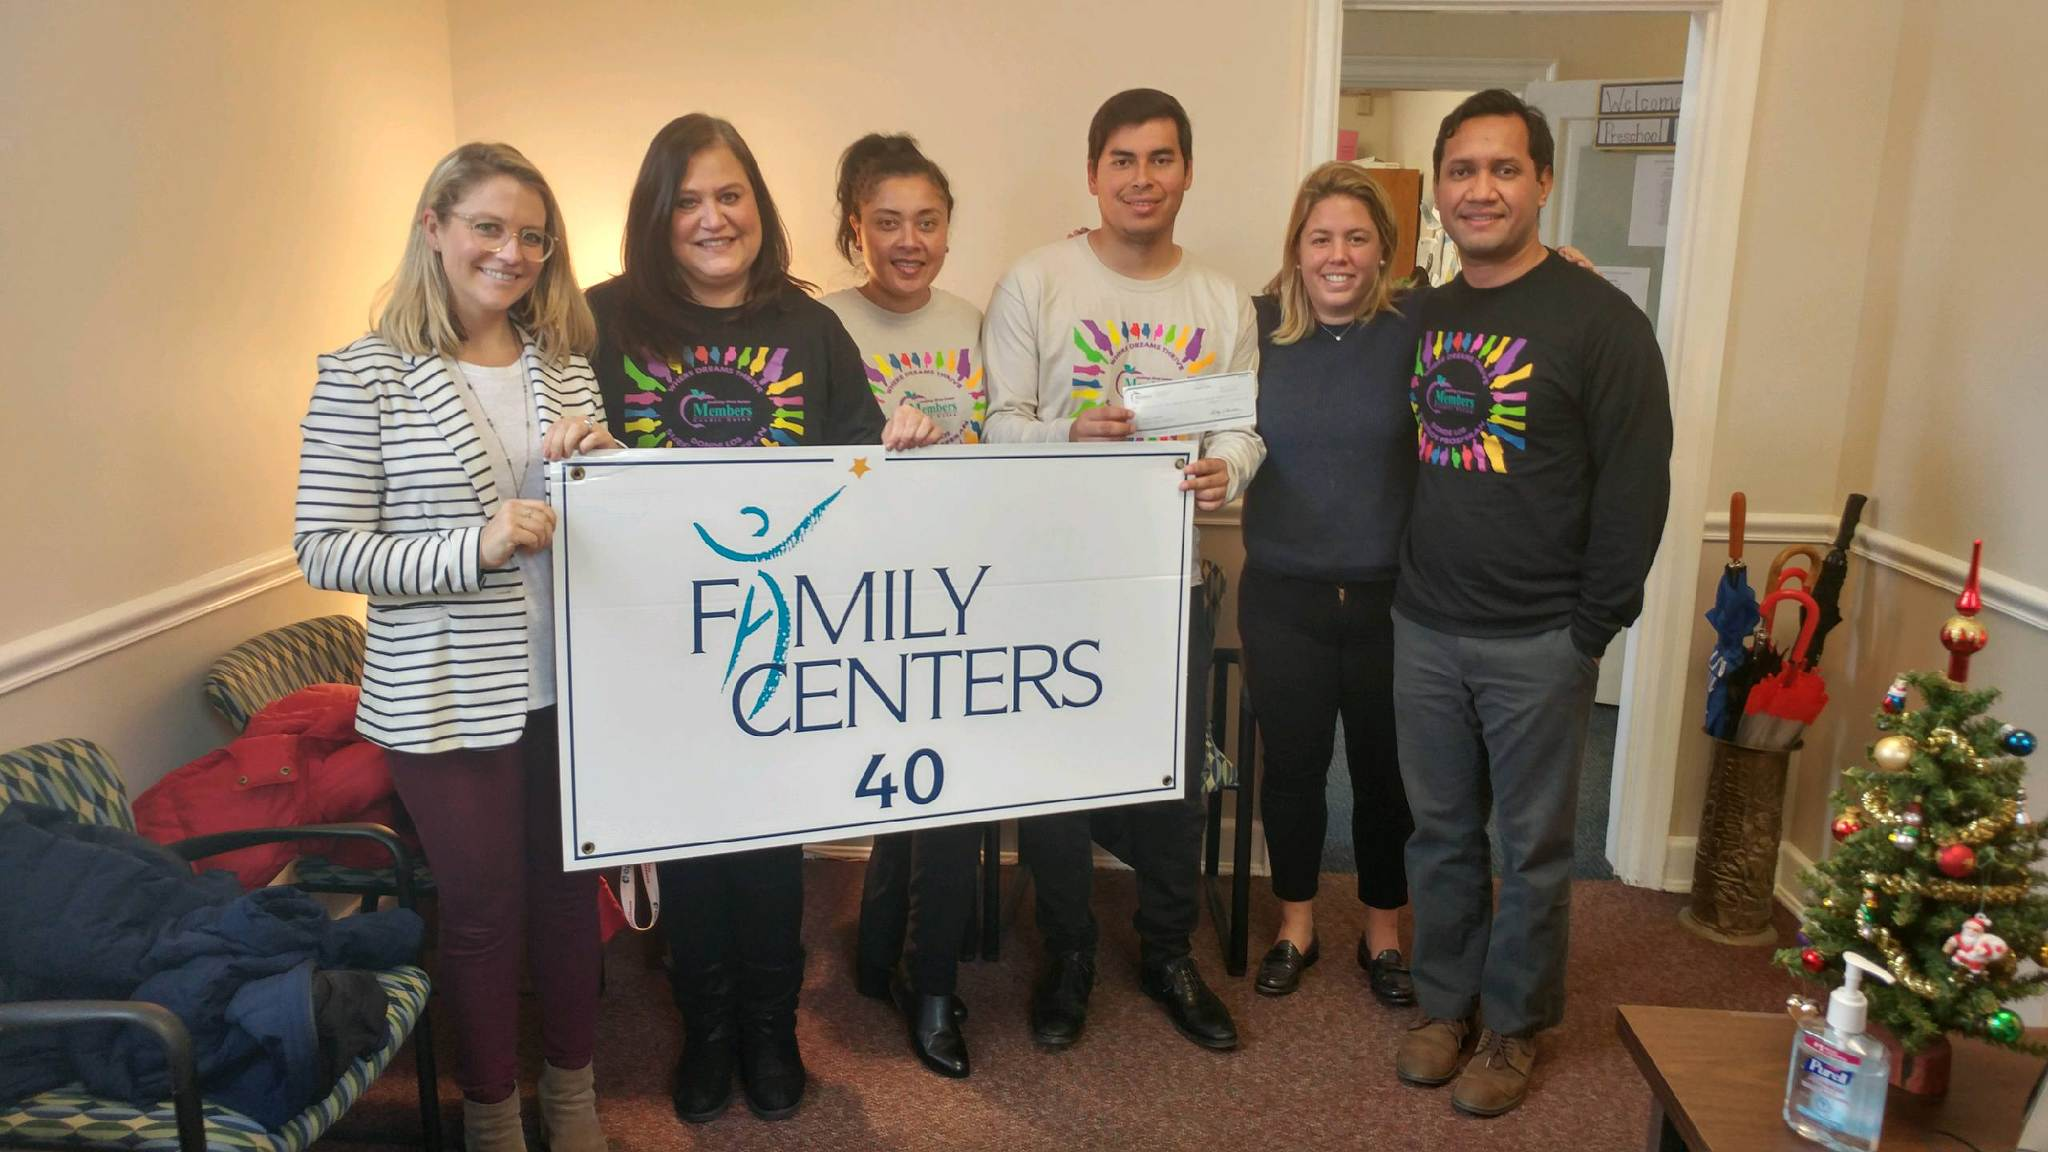 Family centers 40